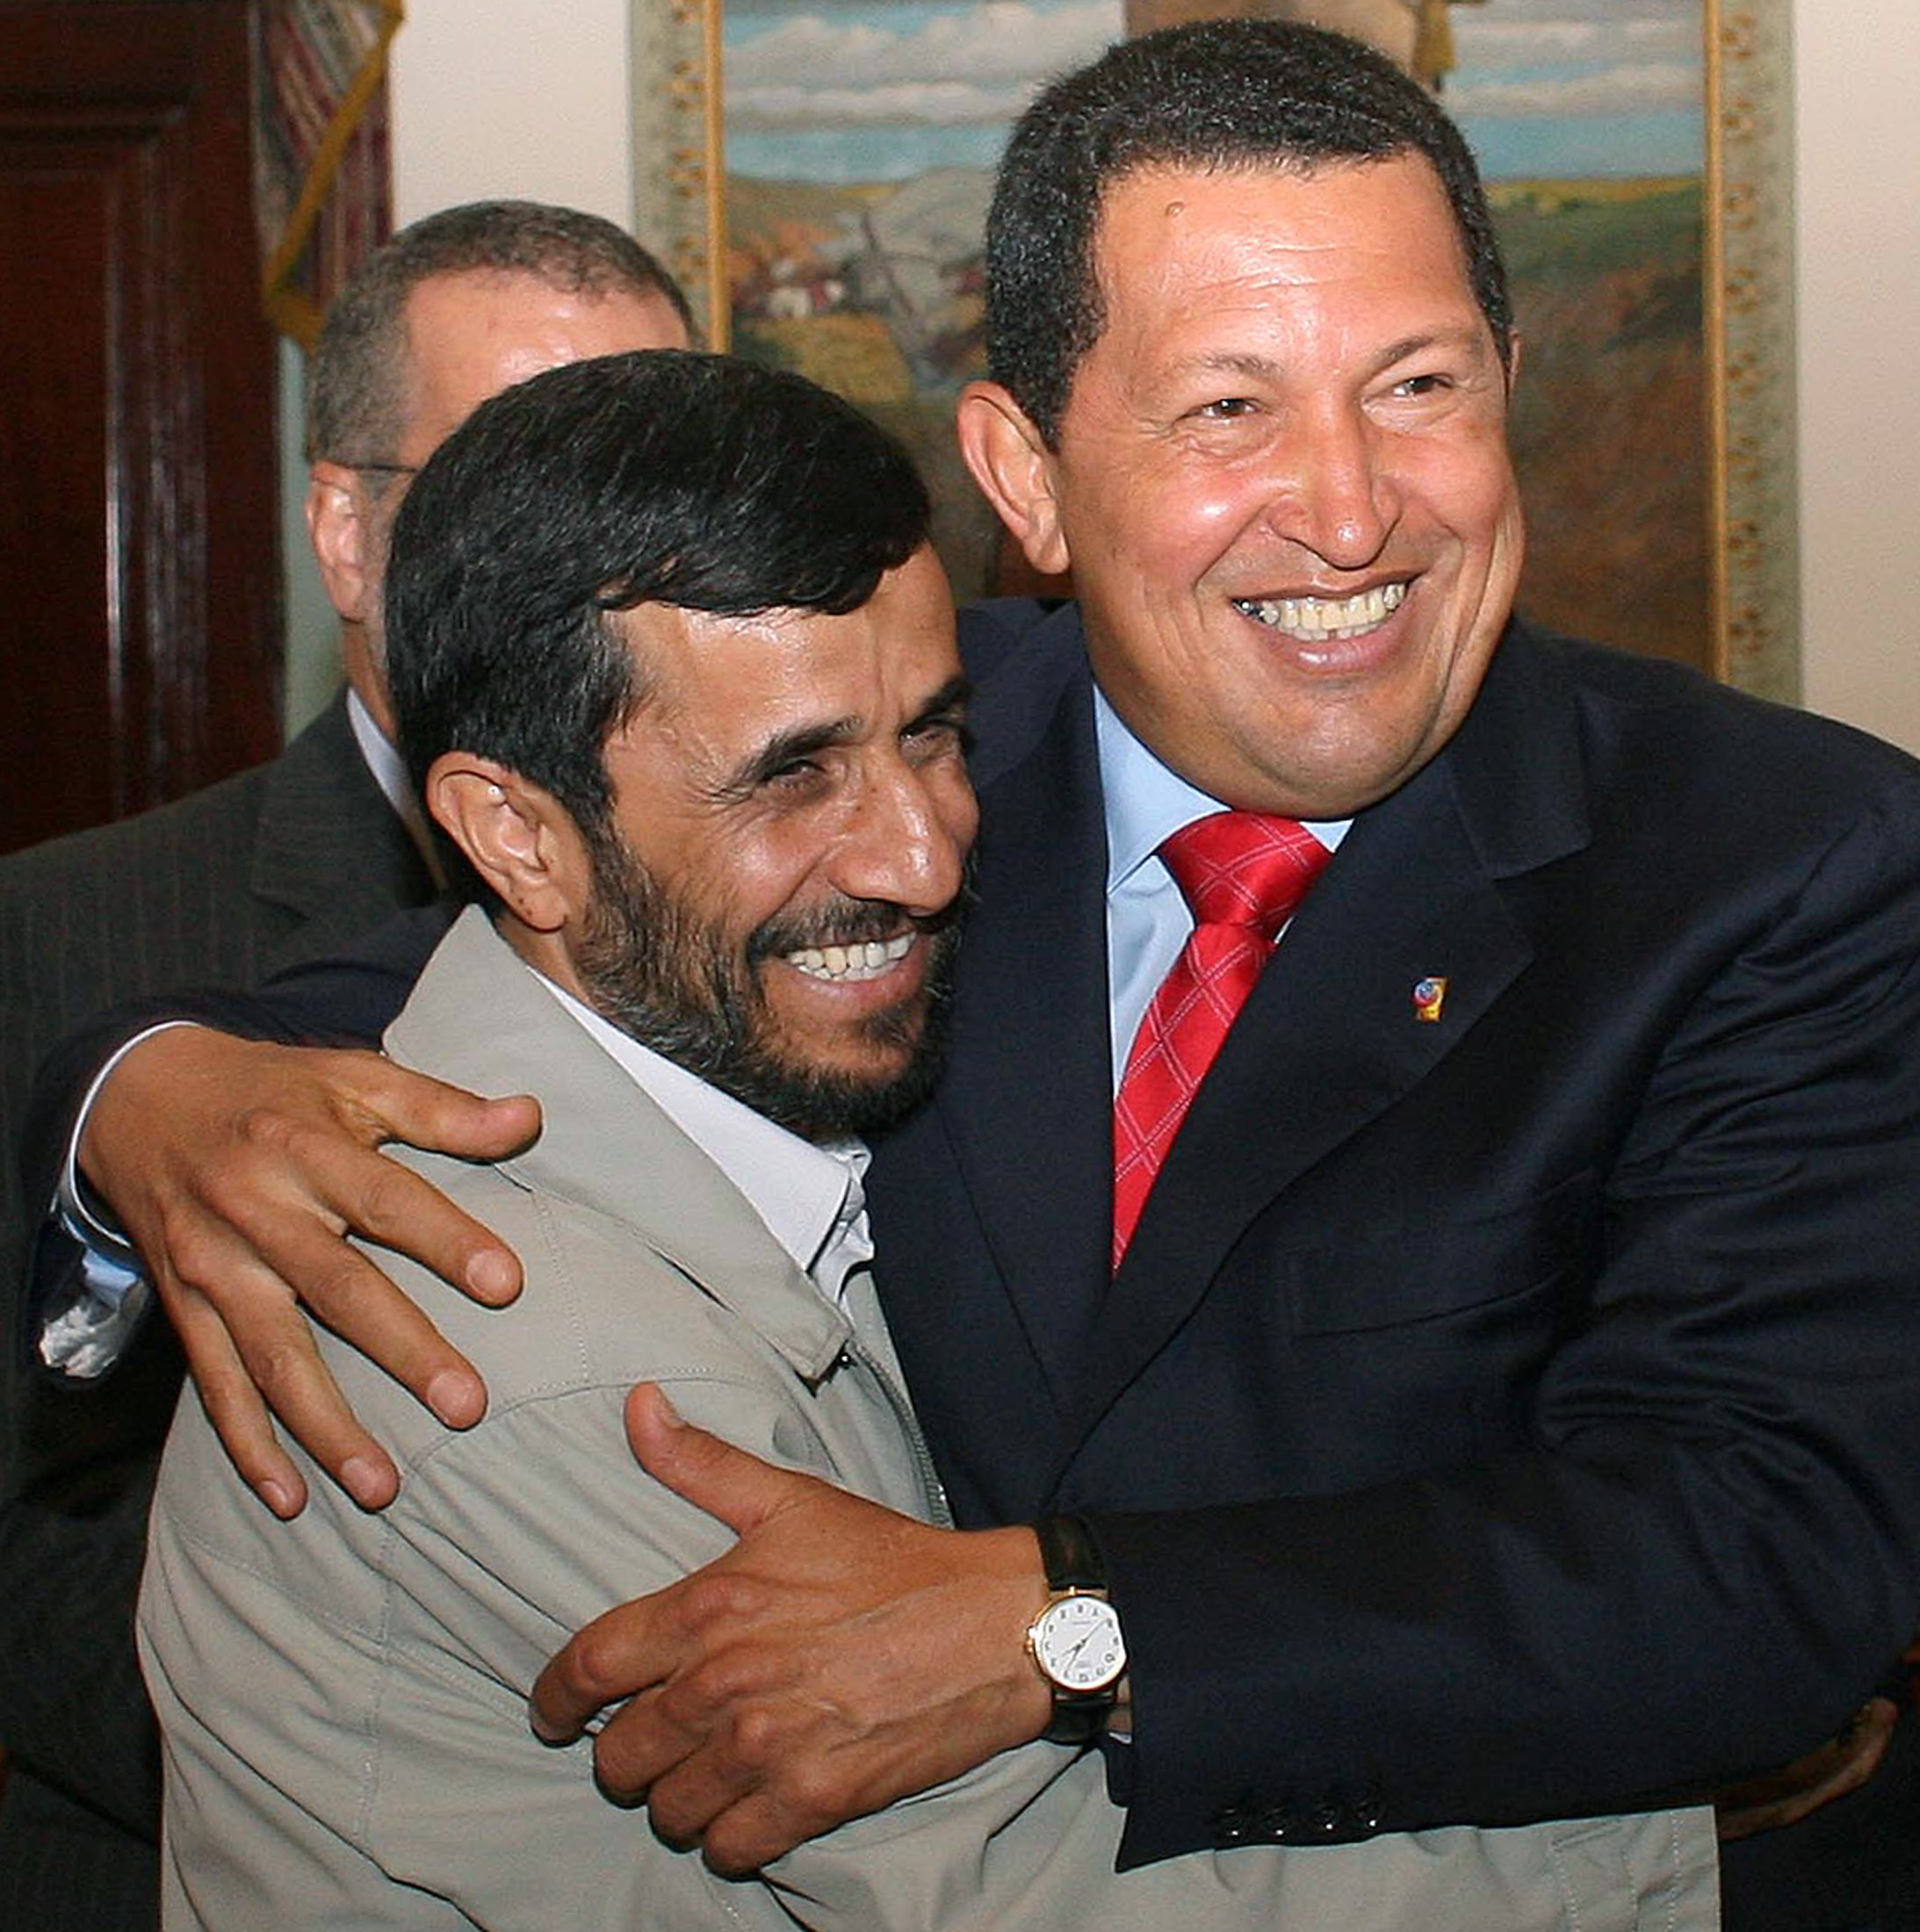 http://www.invent-the-future.org/wp-content/uploads/2012/07/chavez-ahmadinejad.jpg